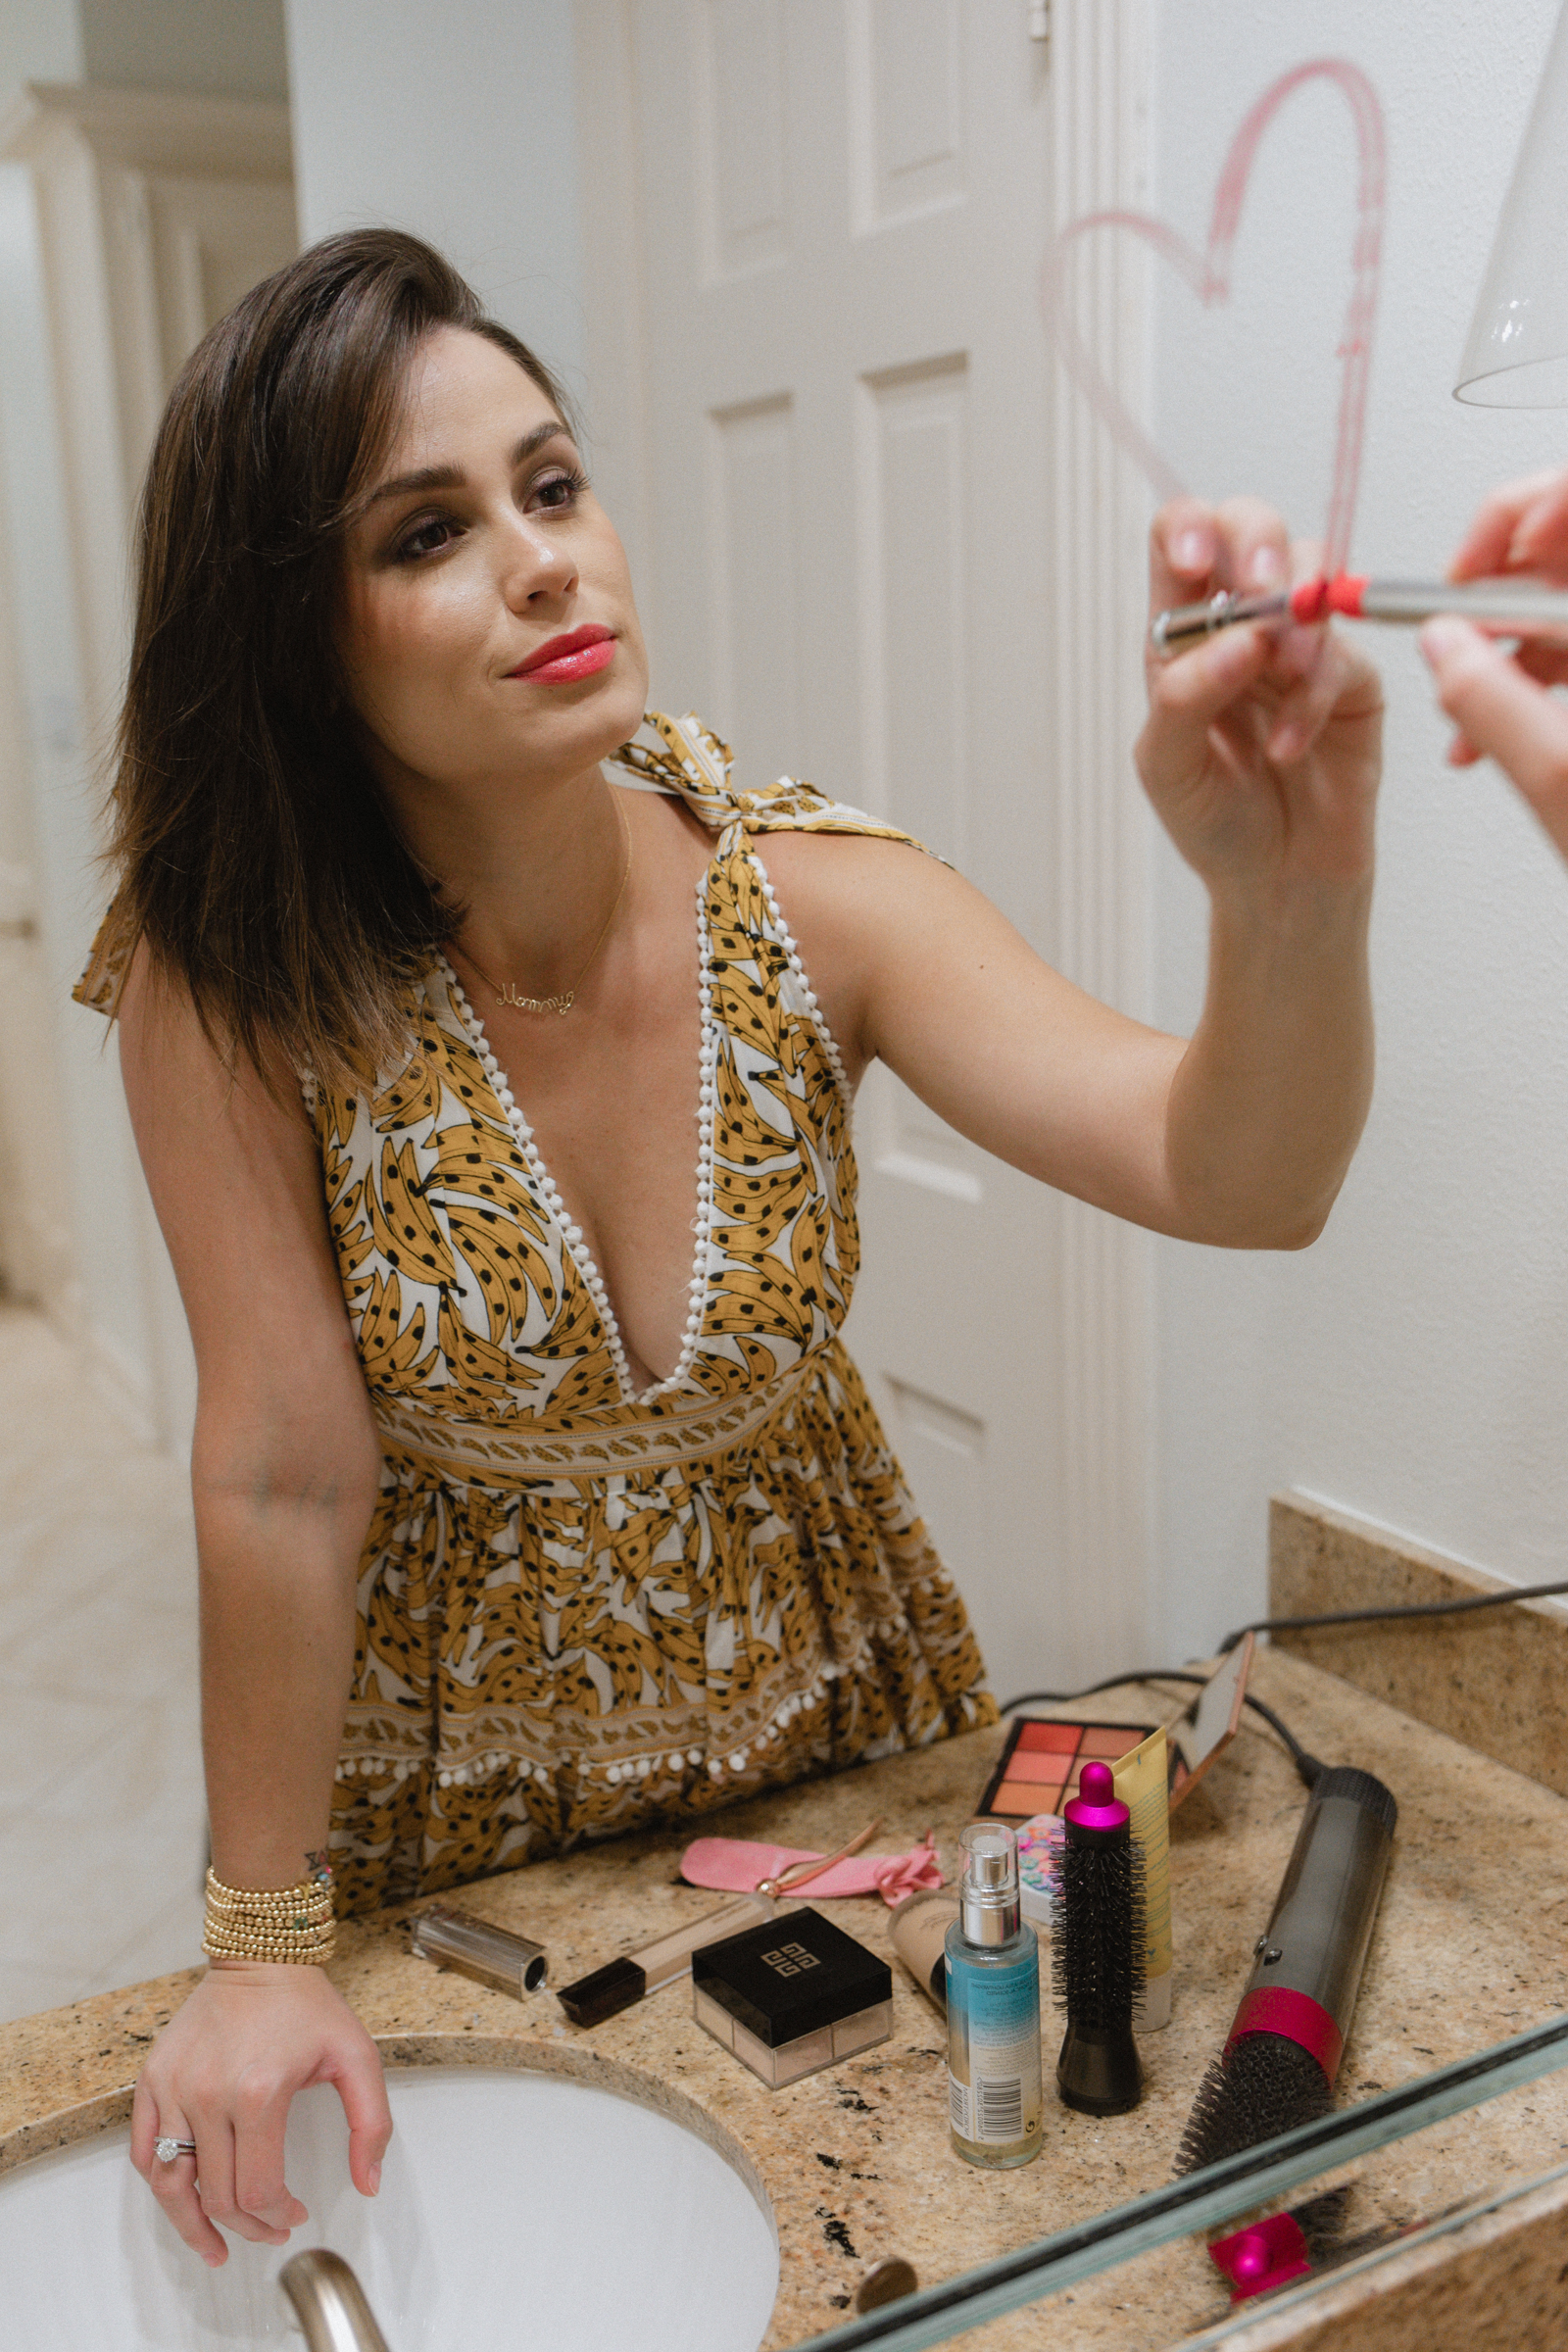 Elly Brown shares her favorite Summer beauty products from Nordstrom including the DIOR lipstick